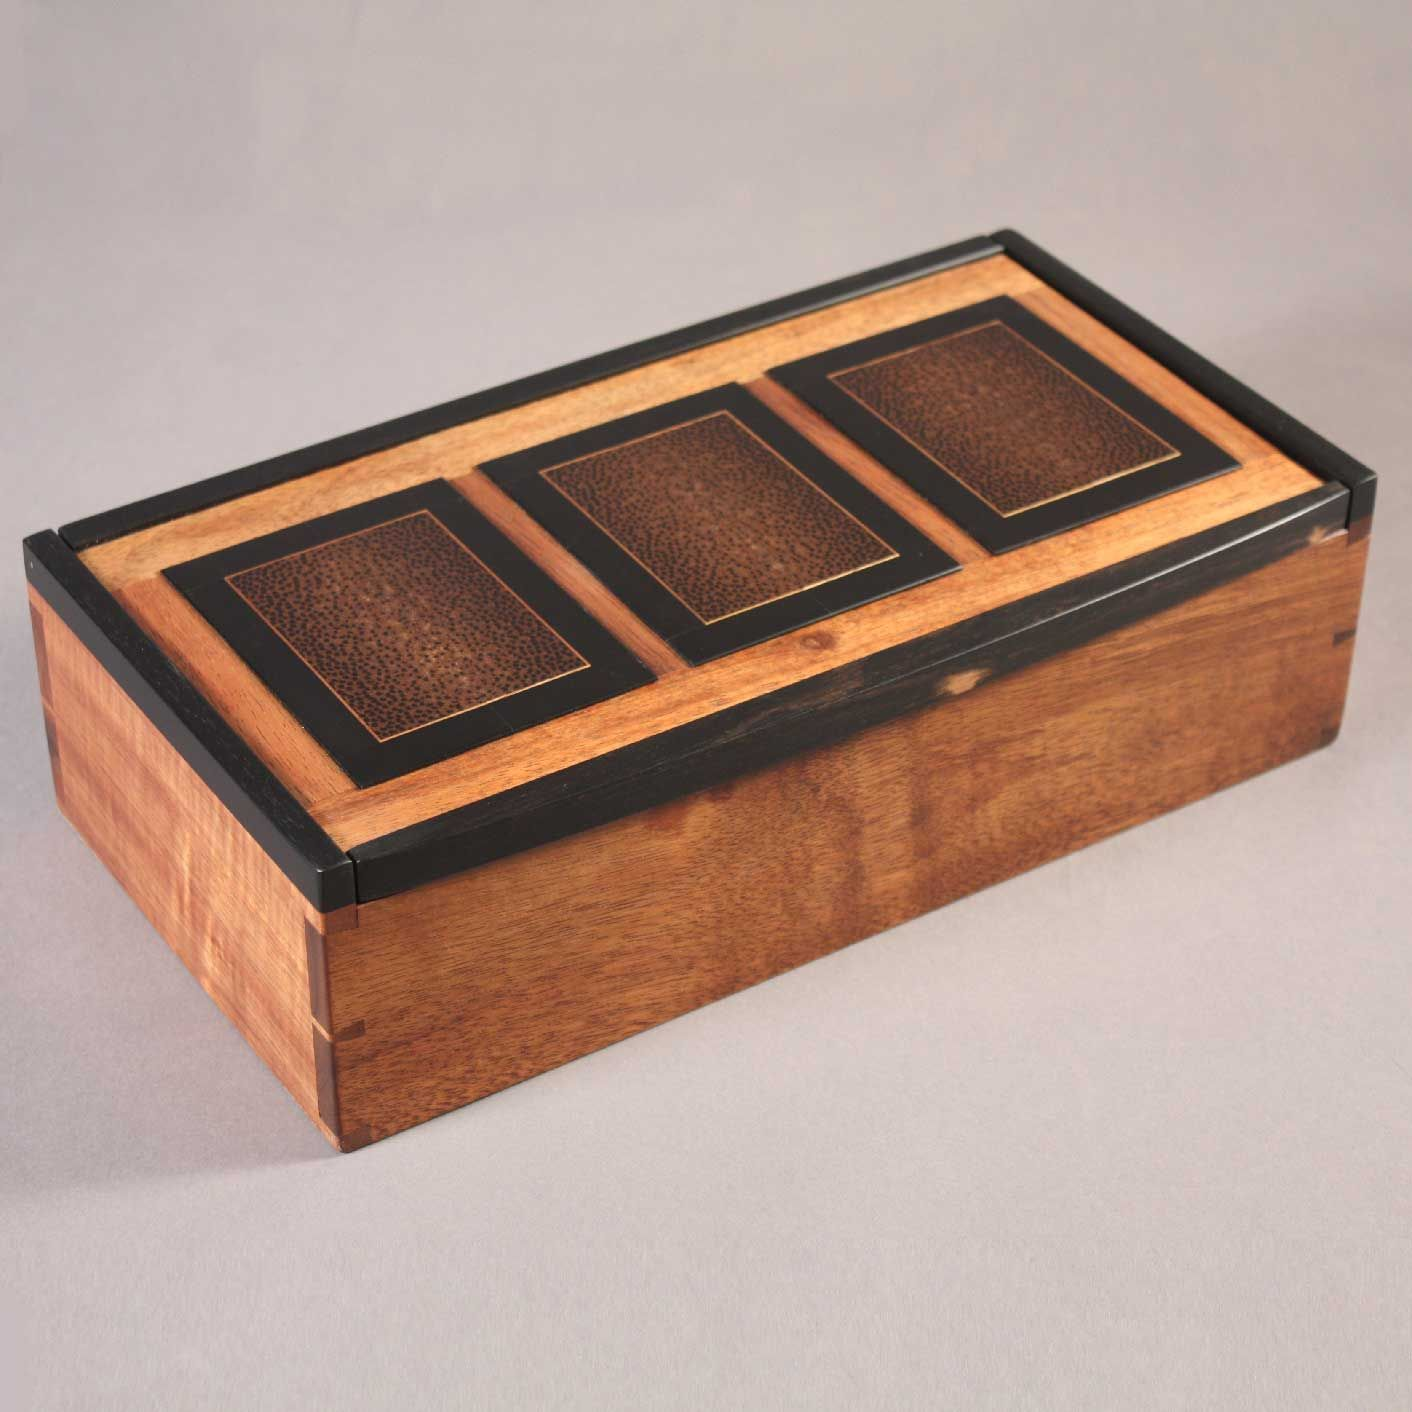 High End Jewelry Boxes Wood Jewelry Box Handcrafted Jewelry Box Handmade Jewelry Box